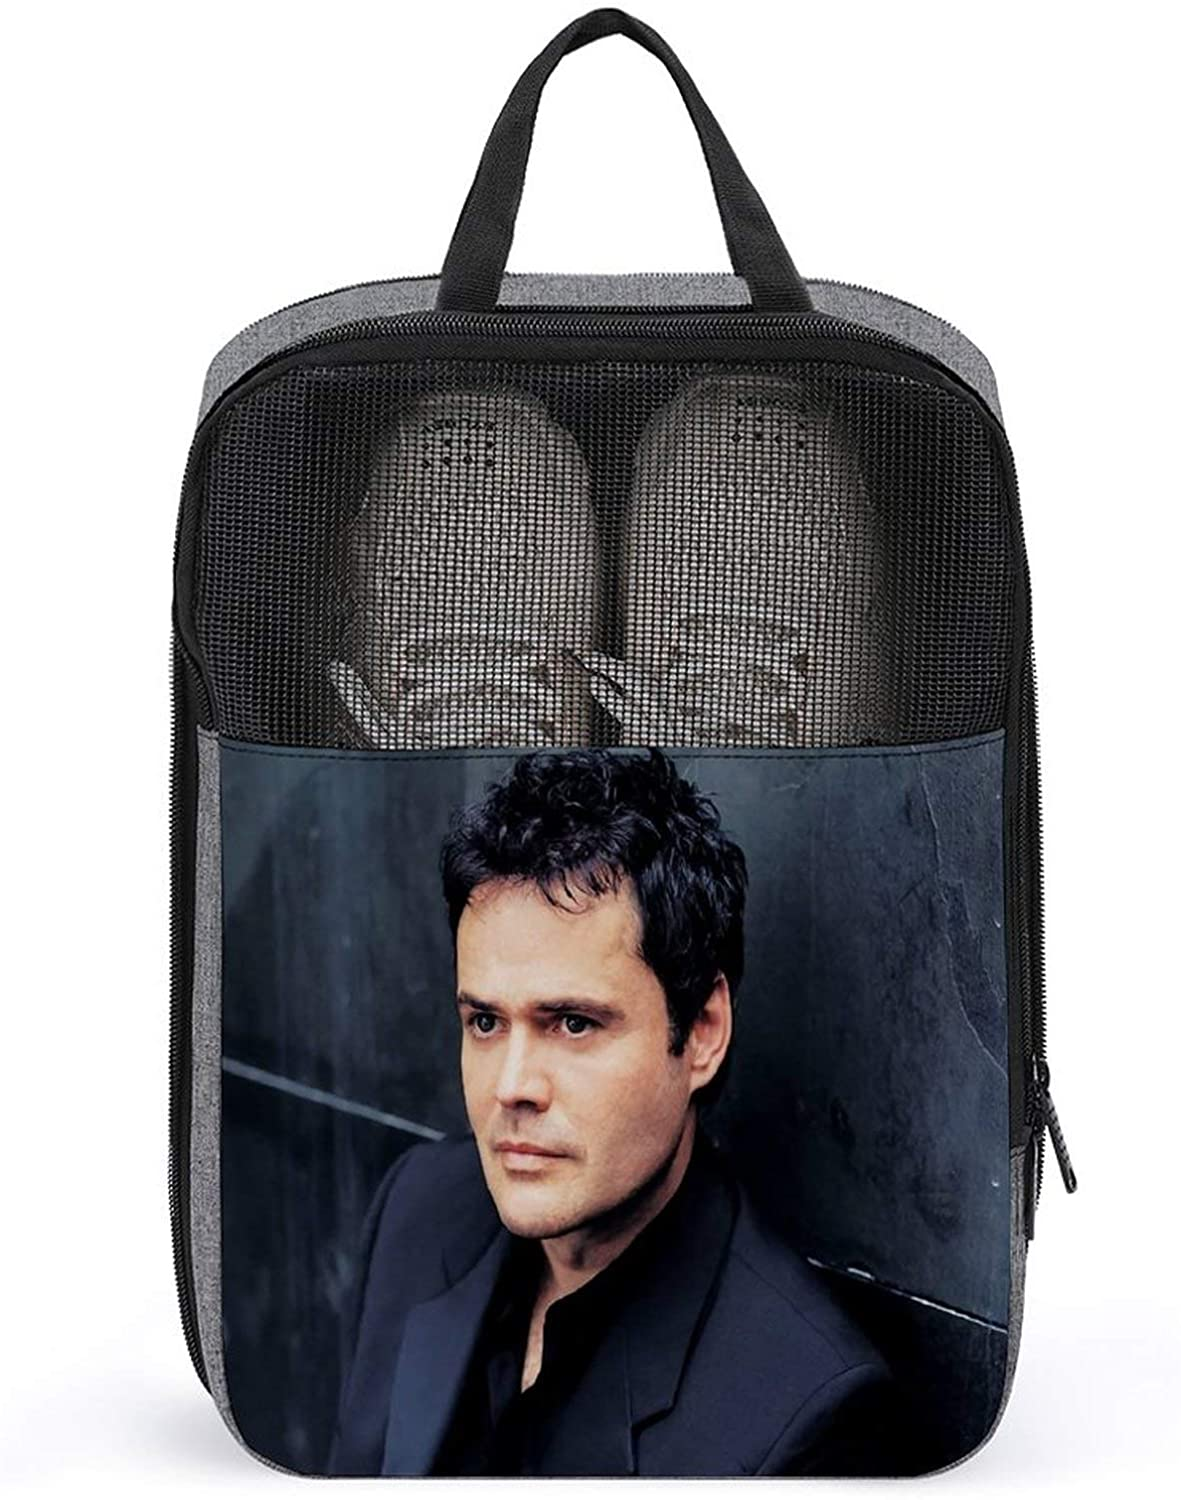 PLASVB DONNY OSMOND OUTDOOR TRAVEL SHOE BOX STORAGE BAG STRONG AND DURABLE SNOWFLAKE CLOTH ONE SIZE